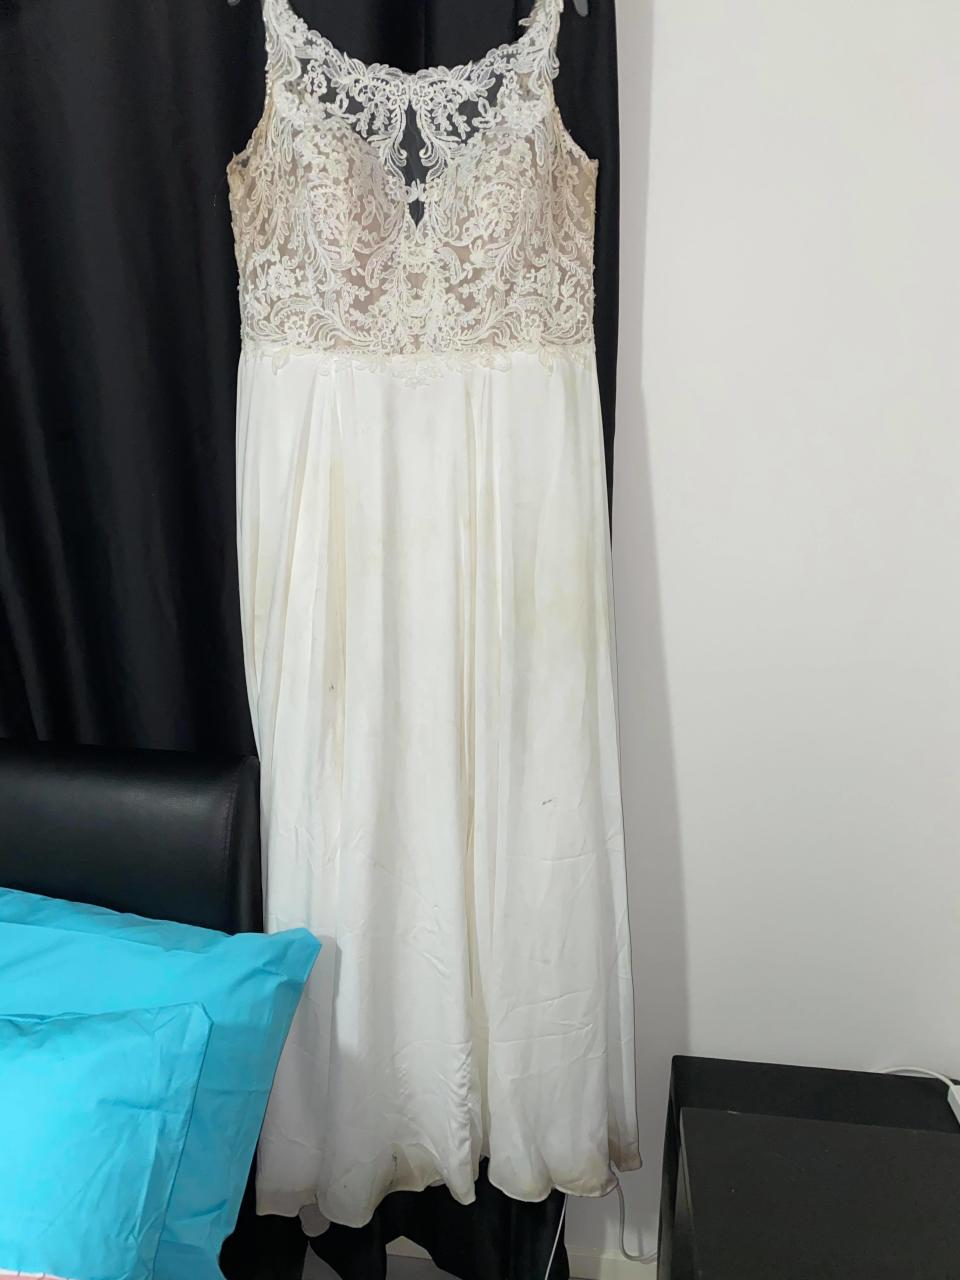 Image of dirty wedding gown